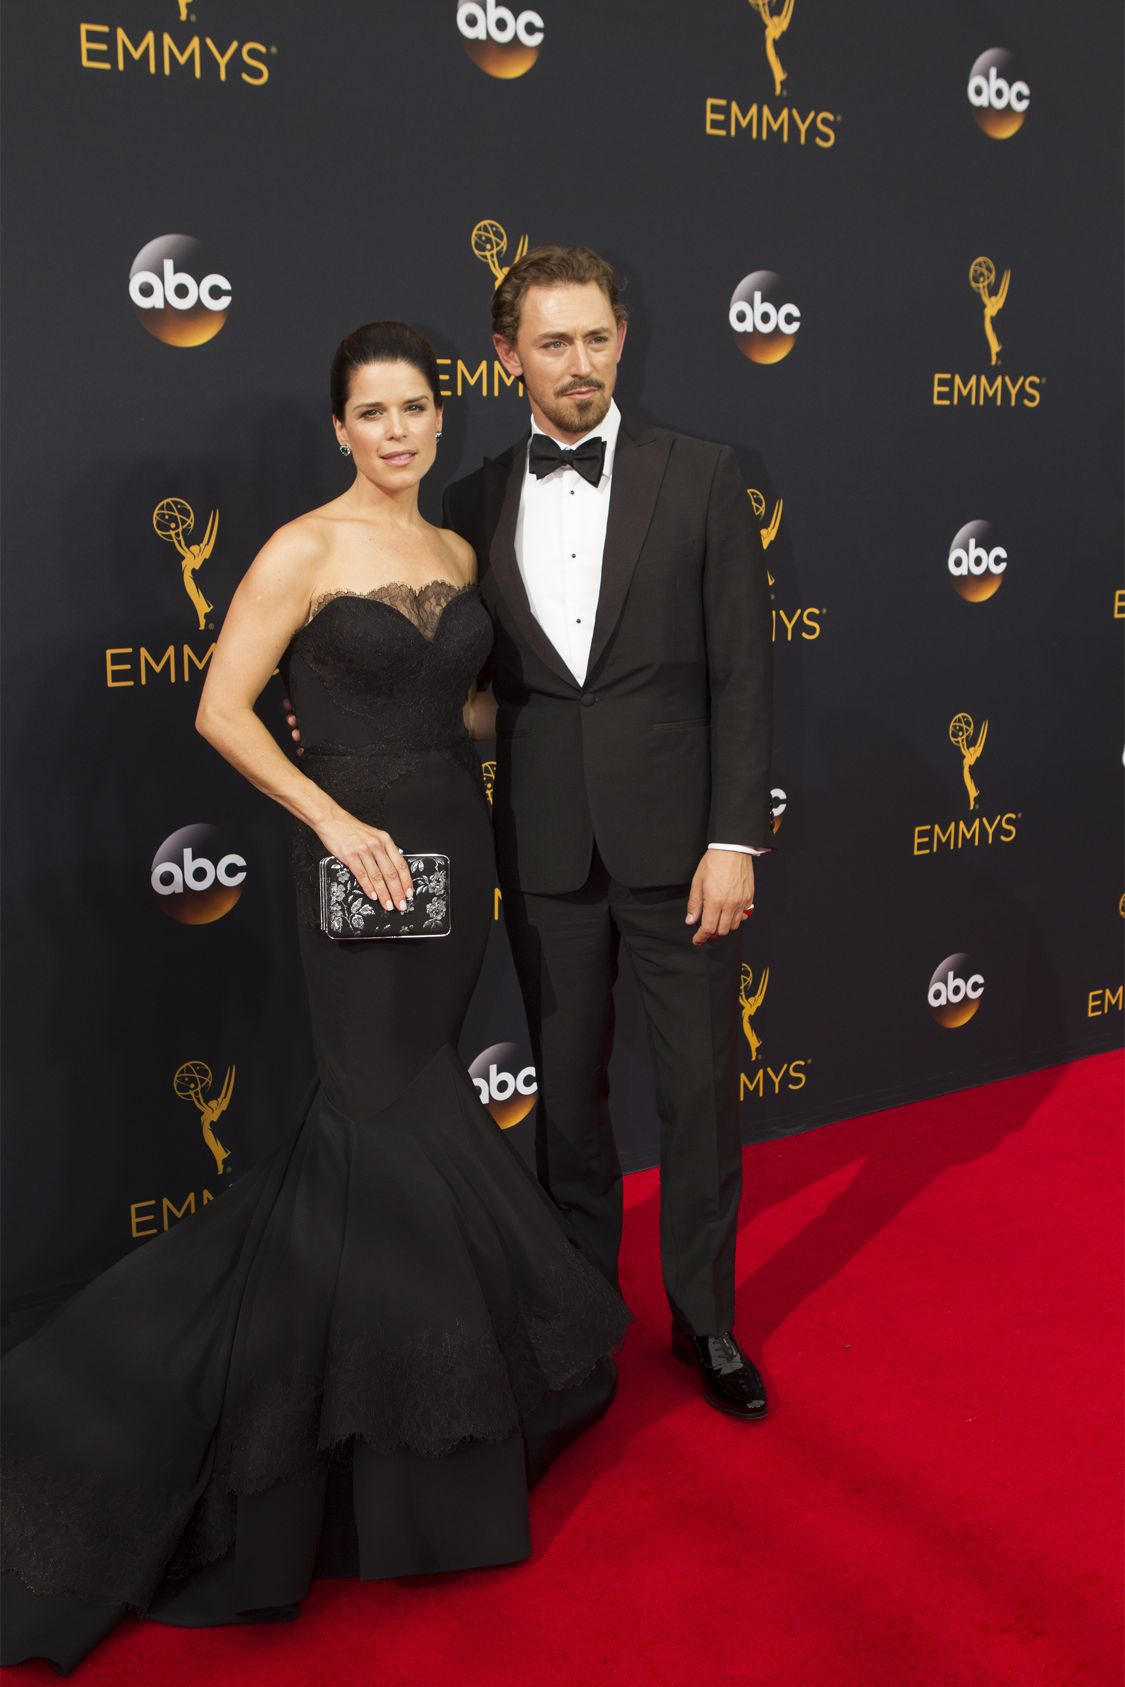 """THE 68TH EMMY(r) AWARDS - """"The 68th Emmy Awards"""" broadcasts live from The Microsoft Theater in Los Angeles, Sunday, September 18 (7:00-11:00 p.m. EDT/4:00-8:00 p.m. PDT), on ABC and is hosted by Jimmy Kimmel. (ABC/Rick Rowell) NEVE CAMPBELL"""